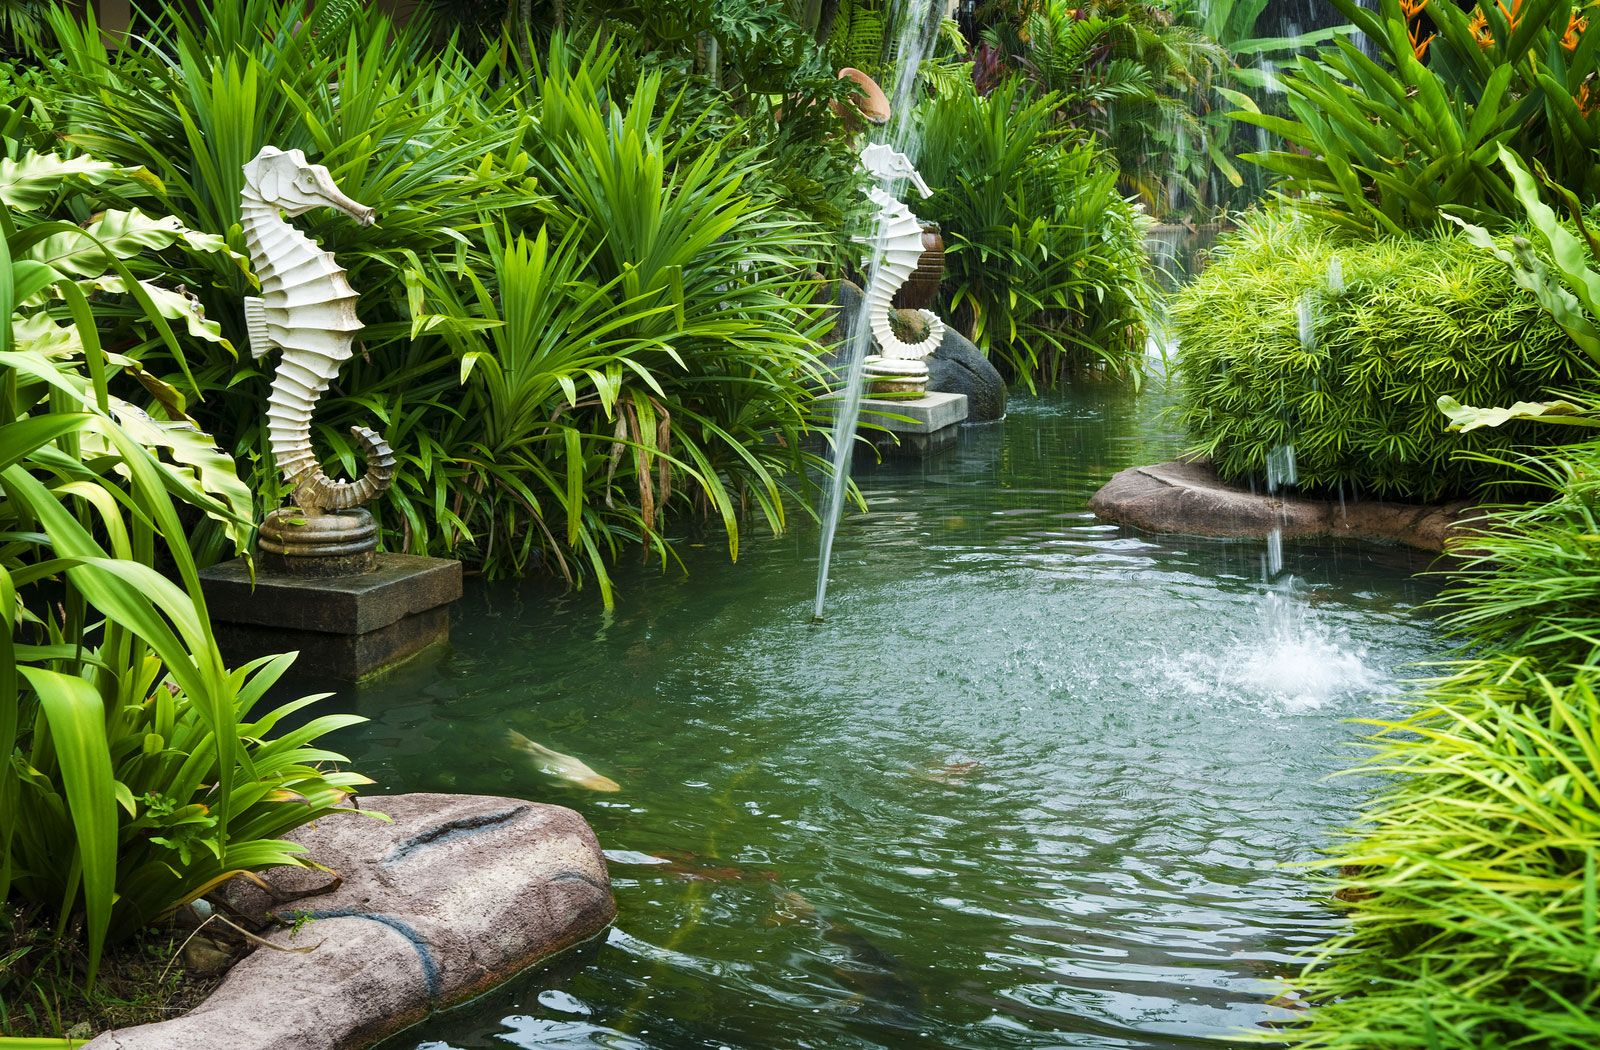 Lovely Picture Of Tropical Zen Garden View With Fountain And Green Plants. Stock  Photo, Images And Stock Photography.